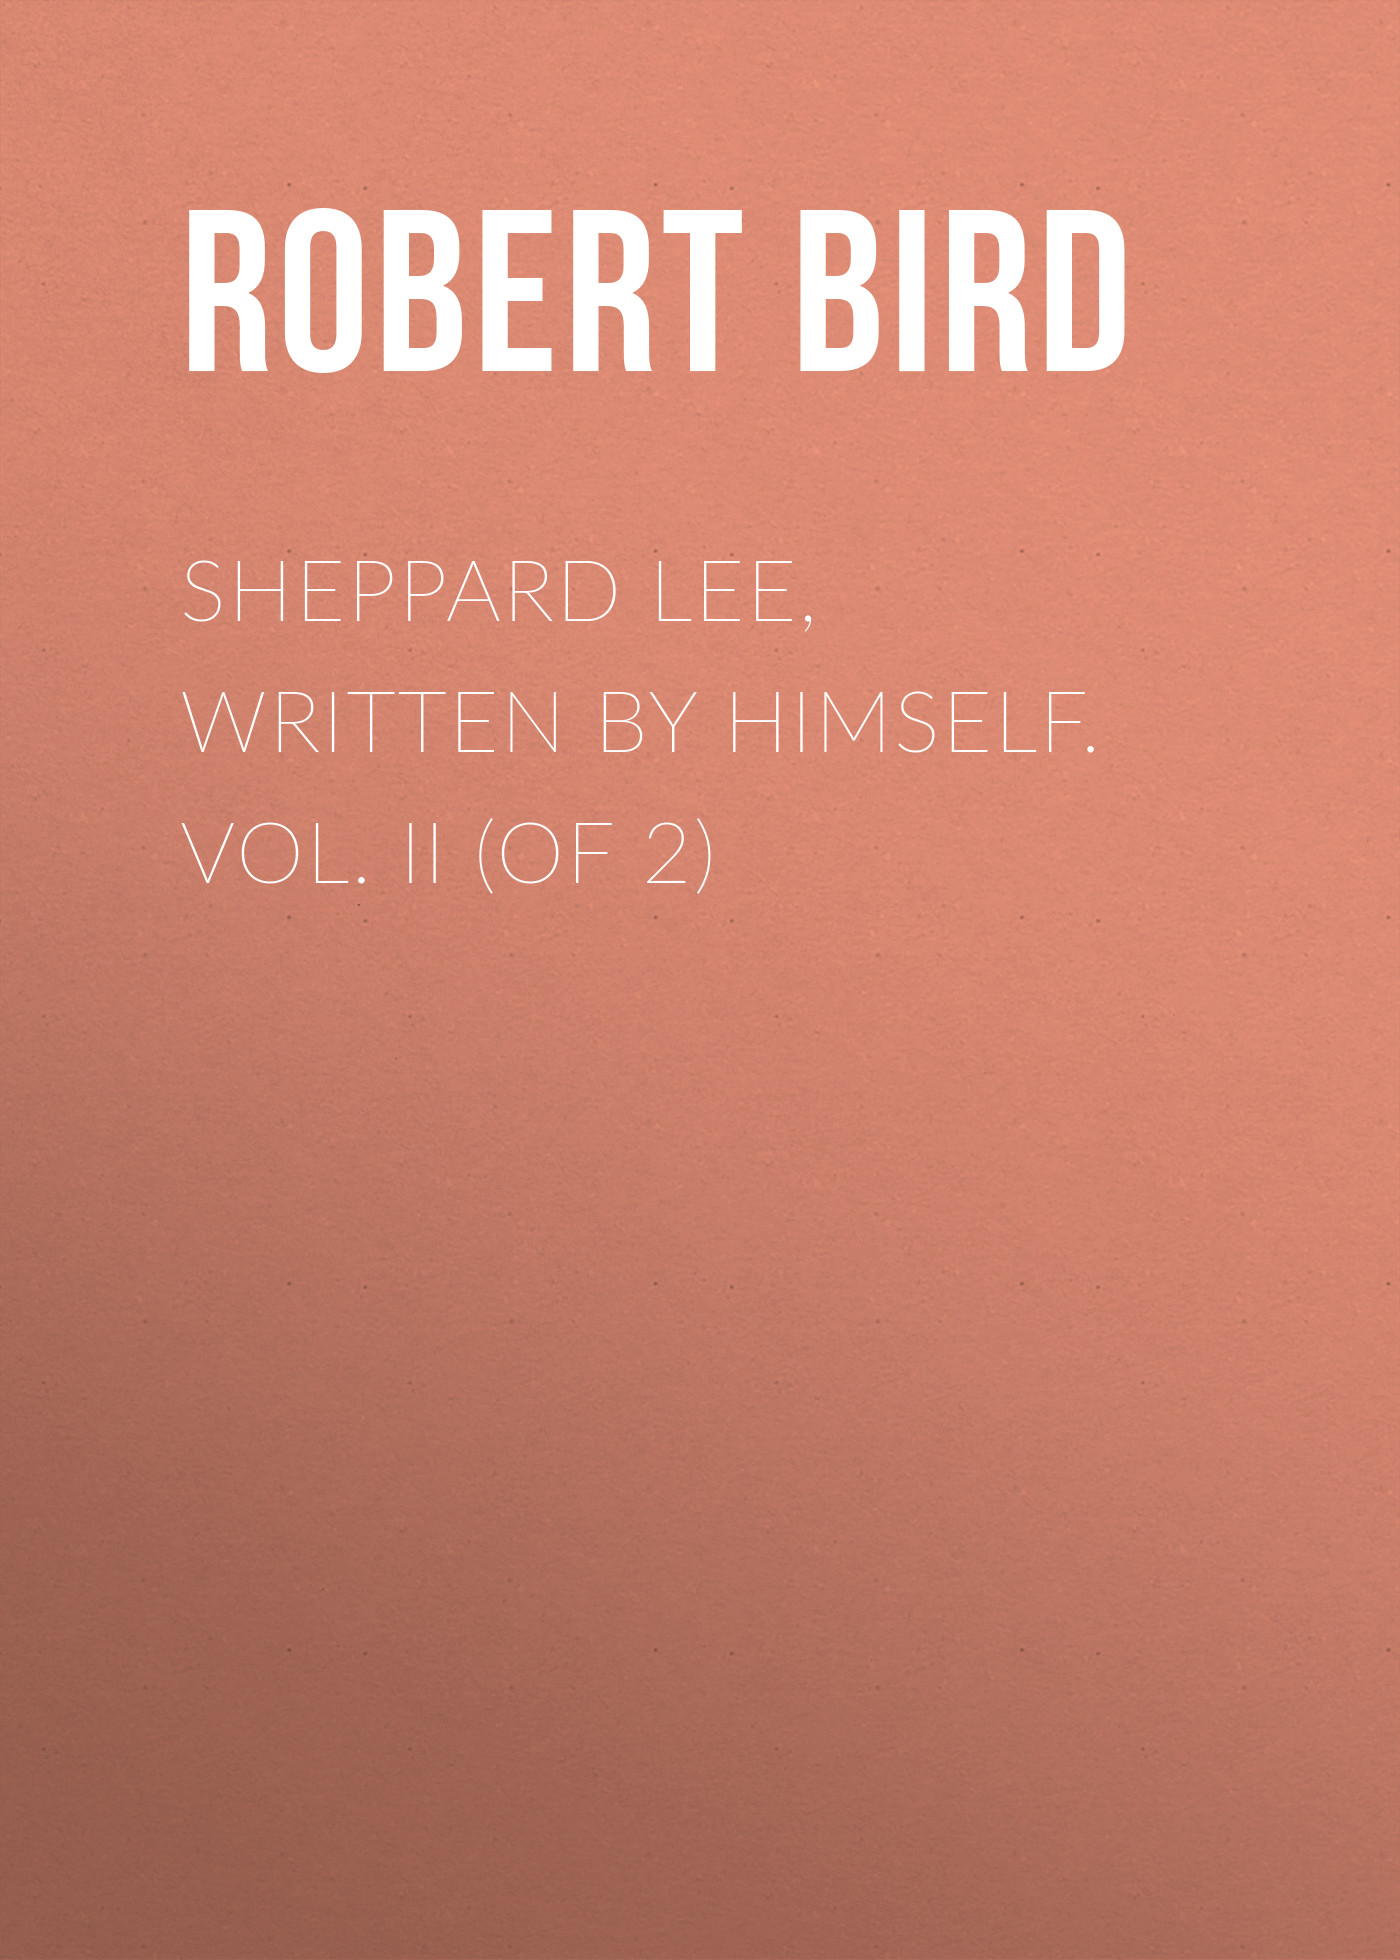 Bird Robert Montgomery Sheppard Lee, Written by Himself. Vol. II (of 2) цена в Москве и Питере